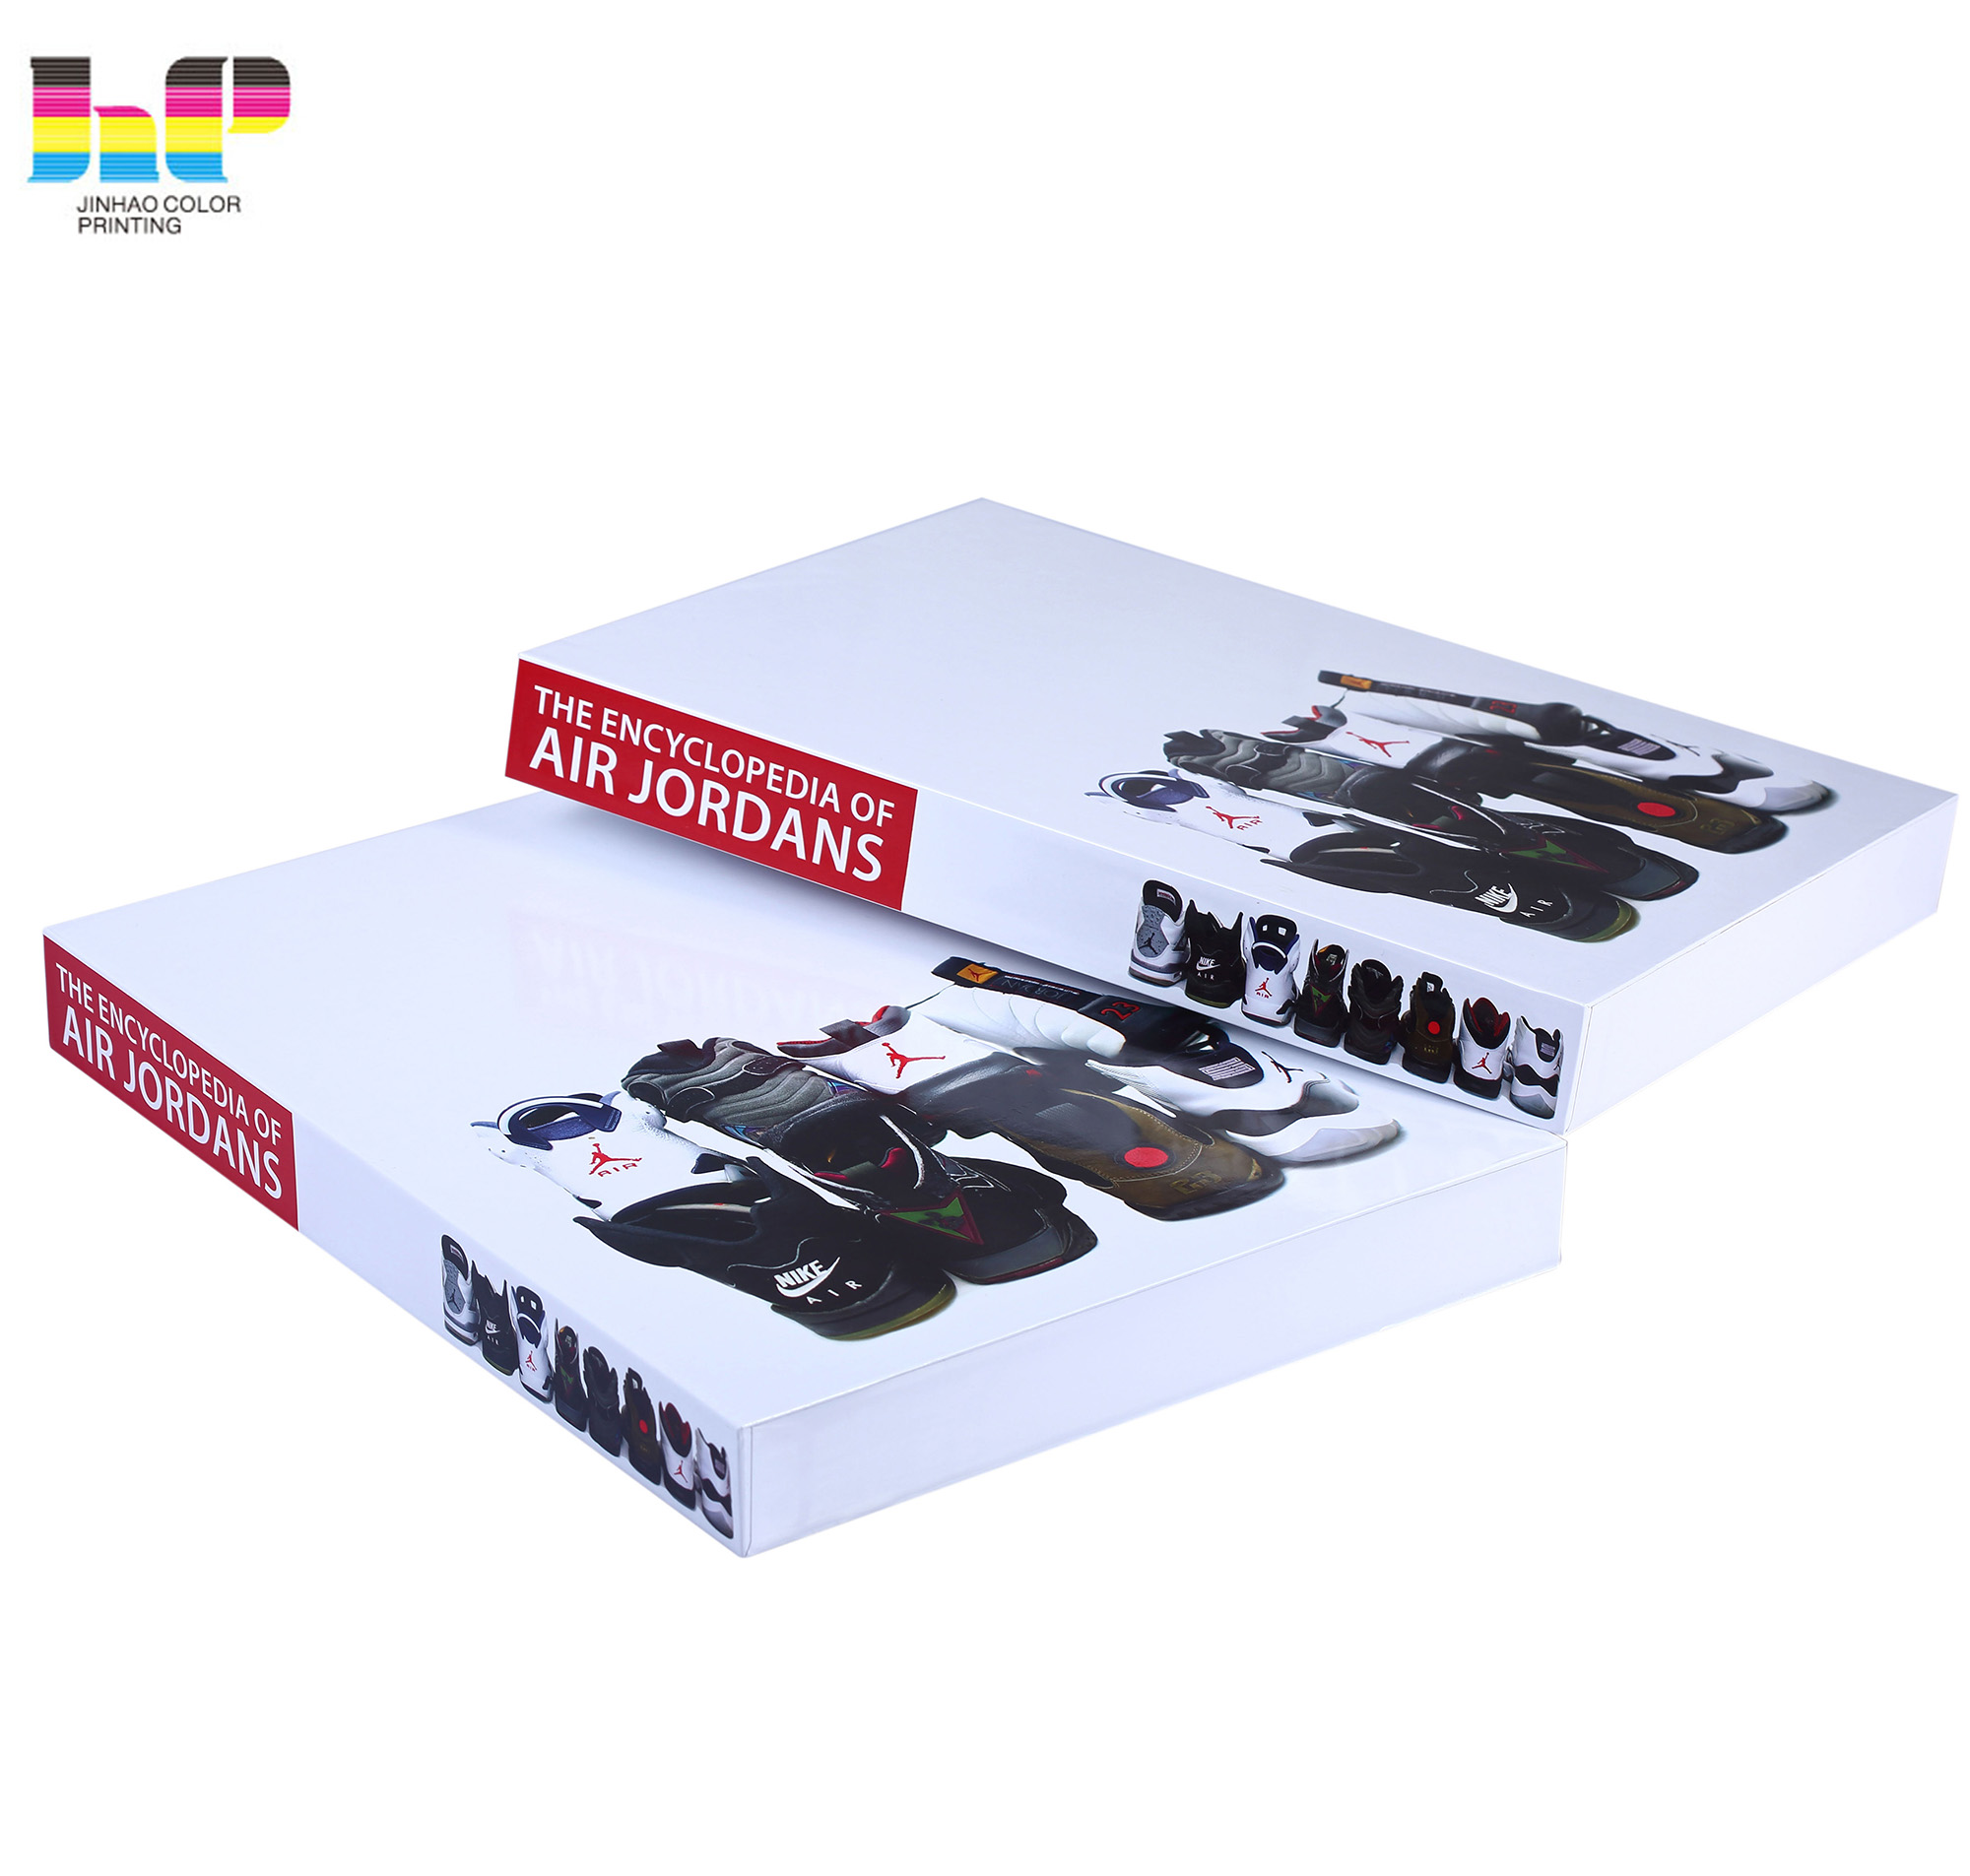 coloring softcover book printing,china printing book,cheap book printing